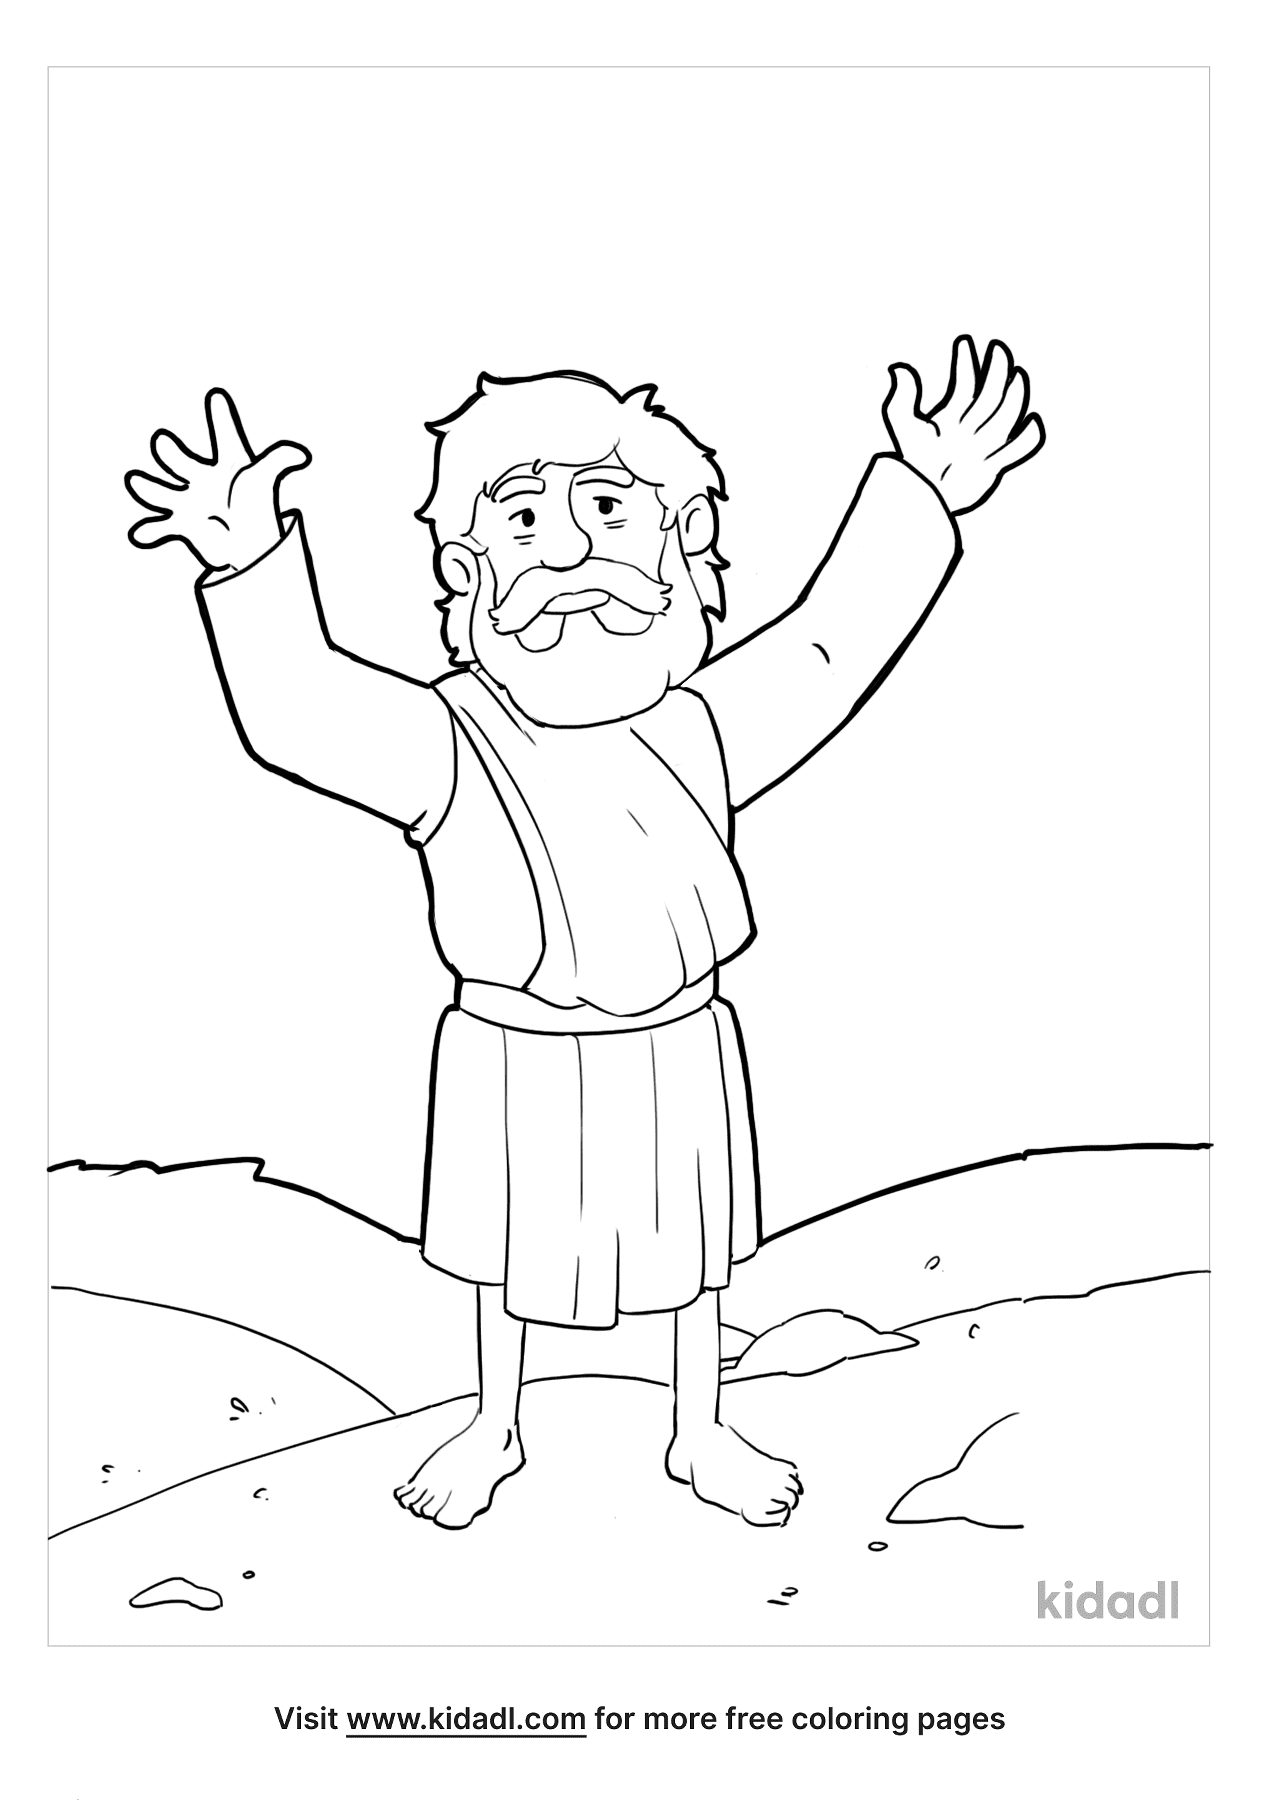 John The Baptist Coloring Pages Free Bible Coloring Pages Kidadl